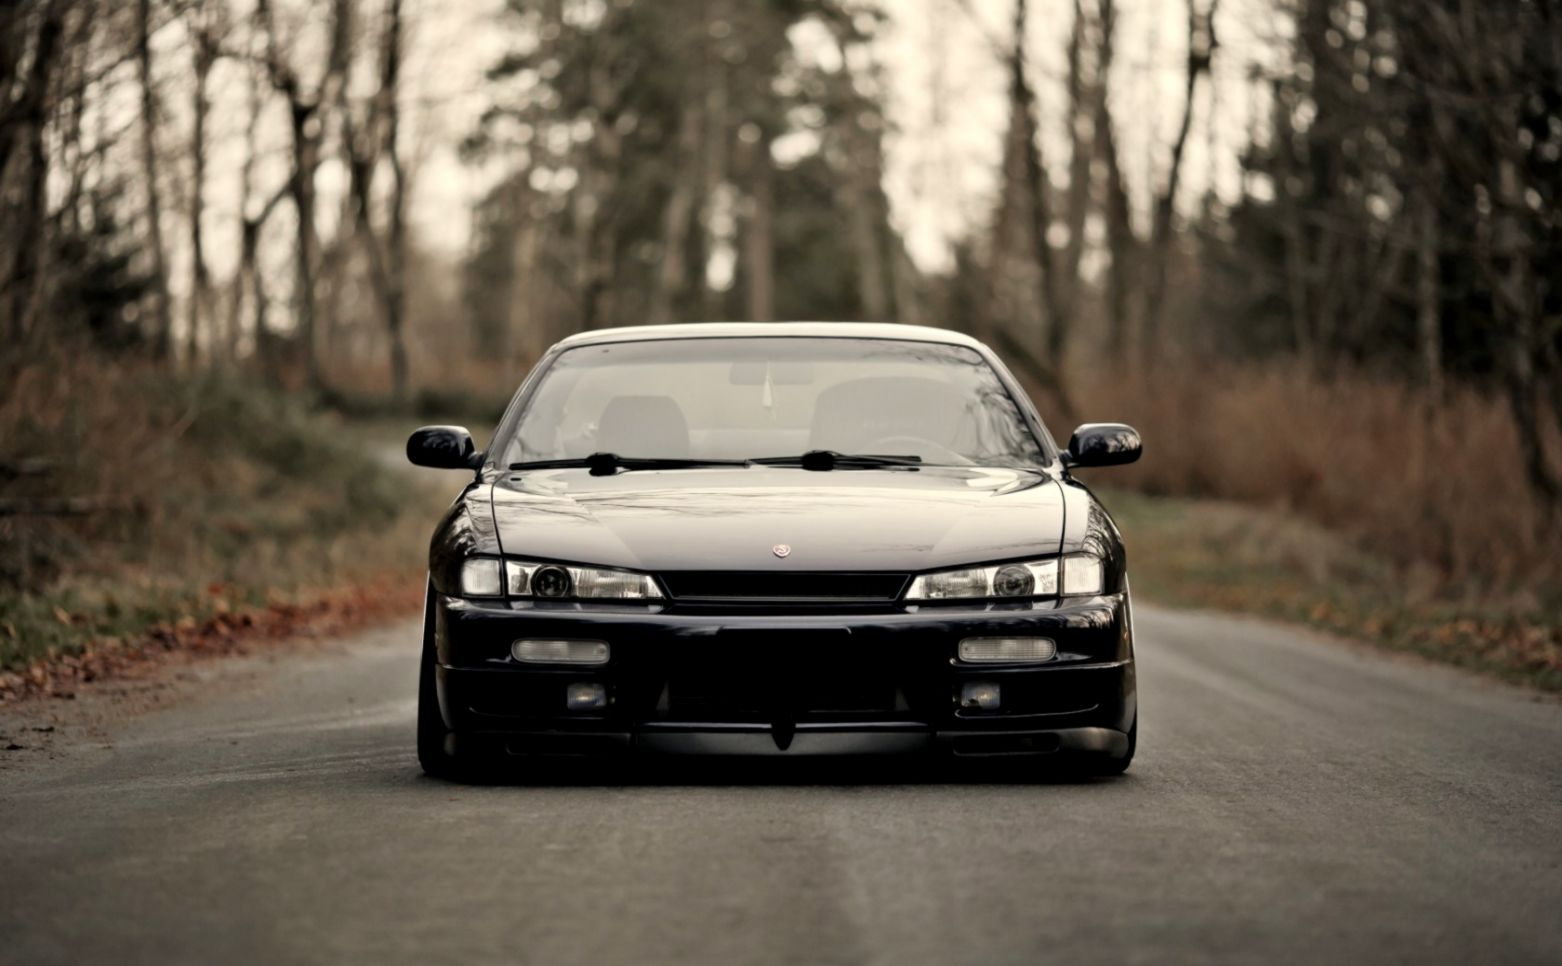 1562x966 - Nissan Silvia S14 Wallpapers 11